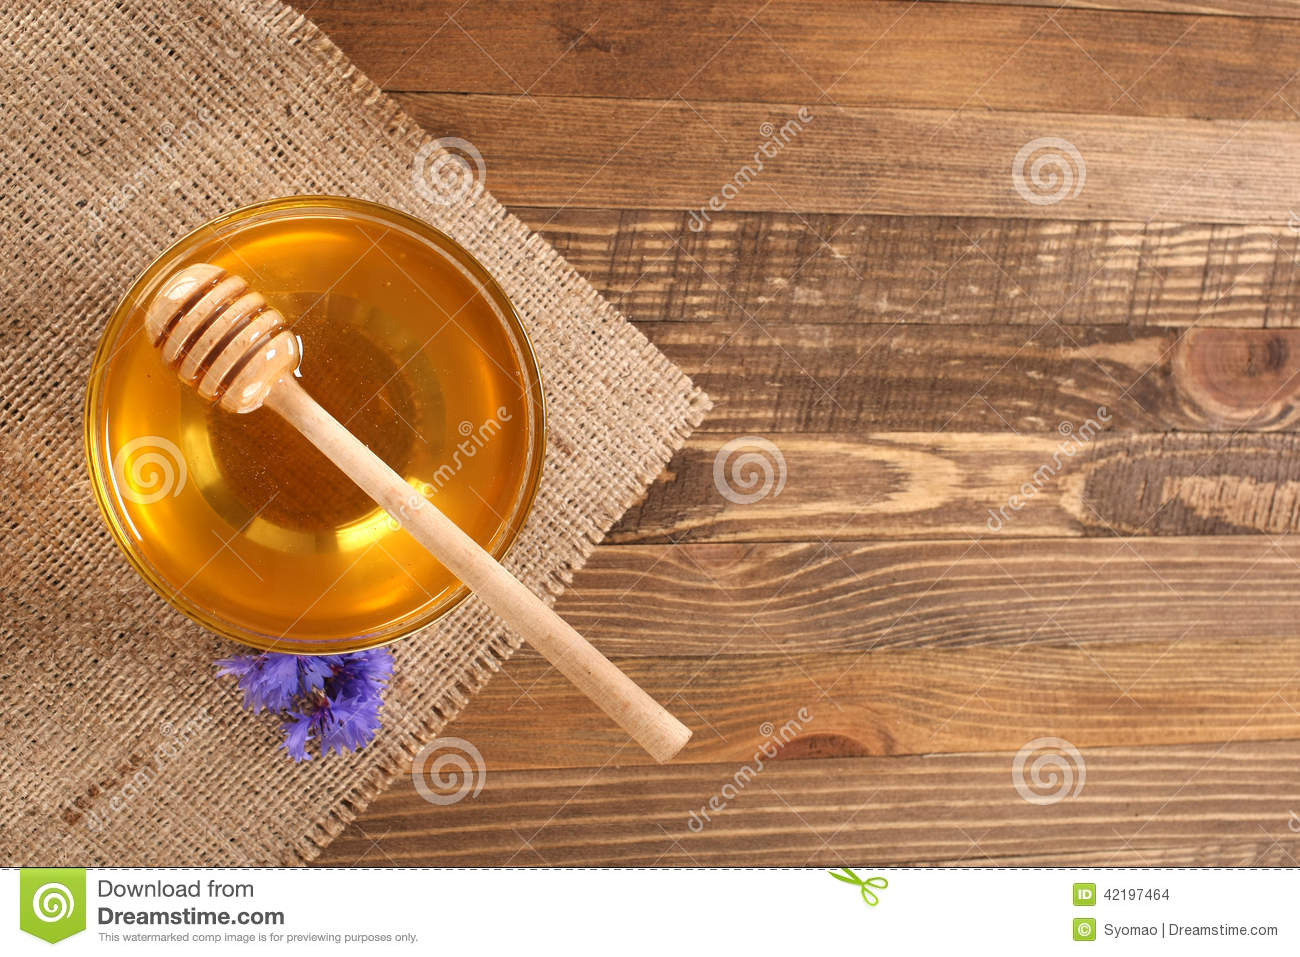 Honey in a glass bowl on a wooden boards background